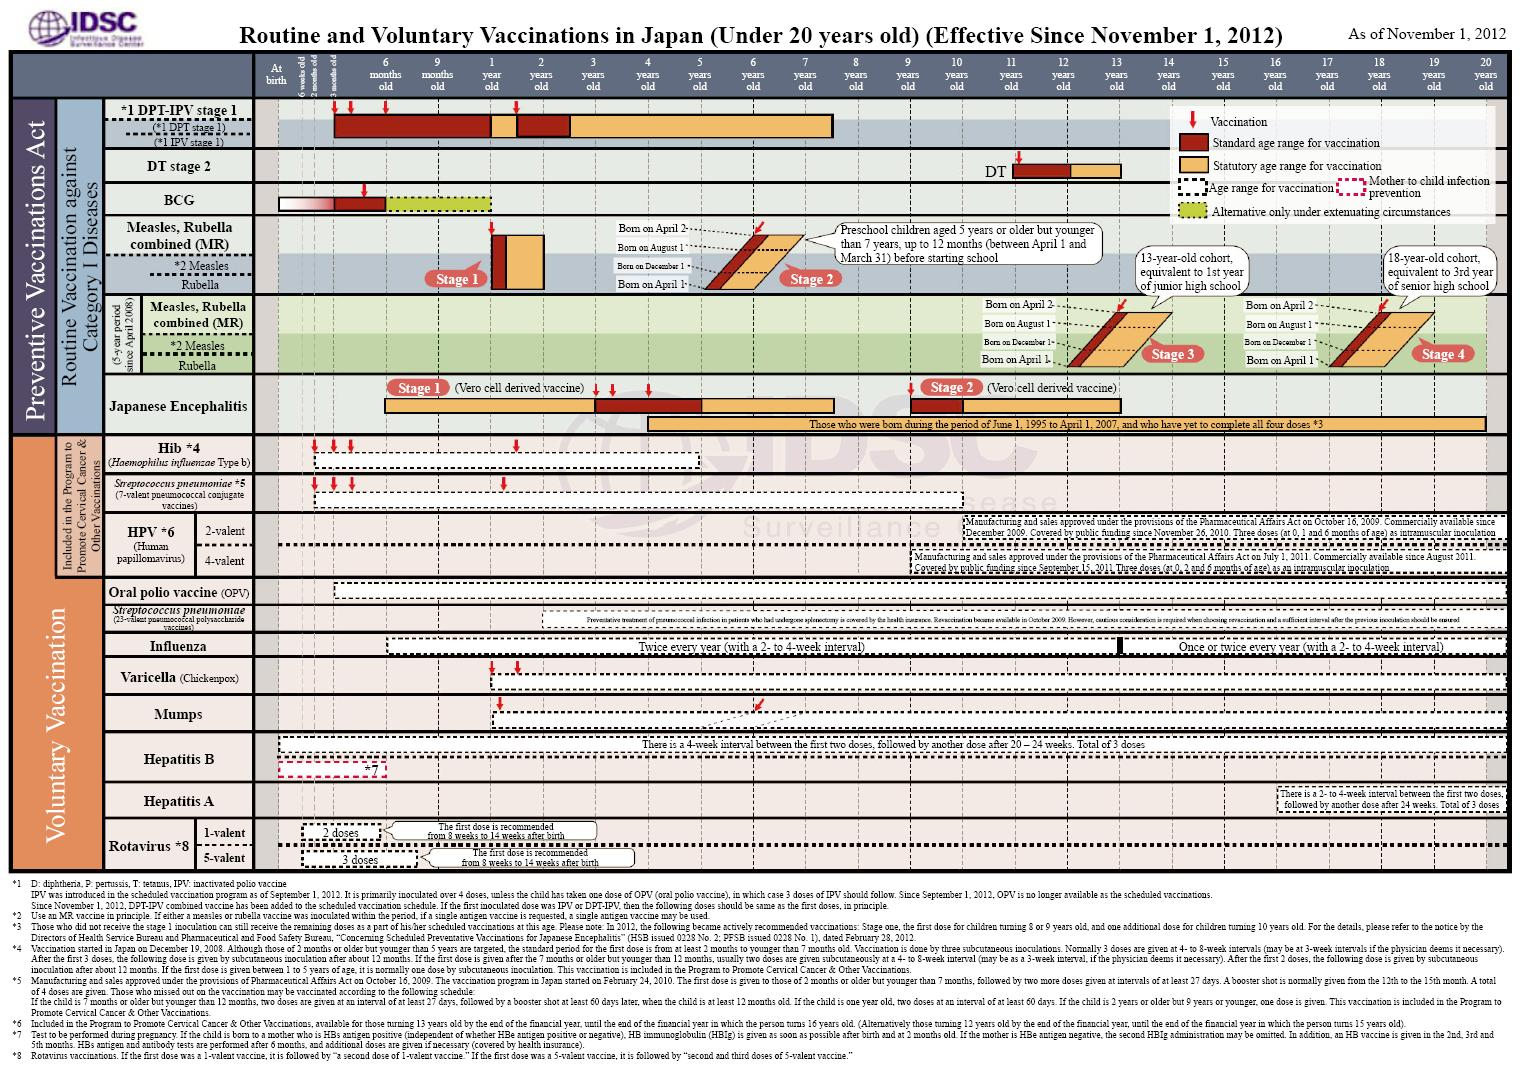 Table 1: Japan Vaccination Schedule 2012